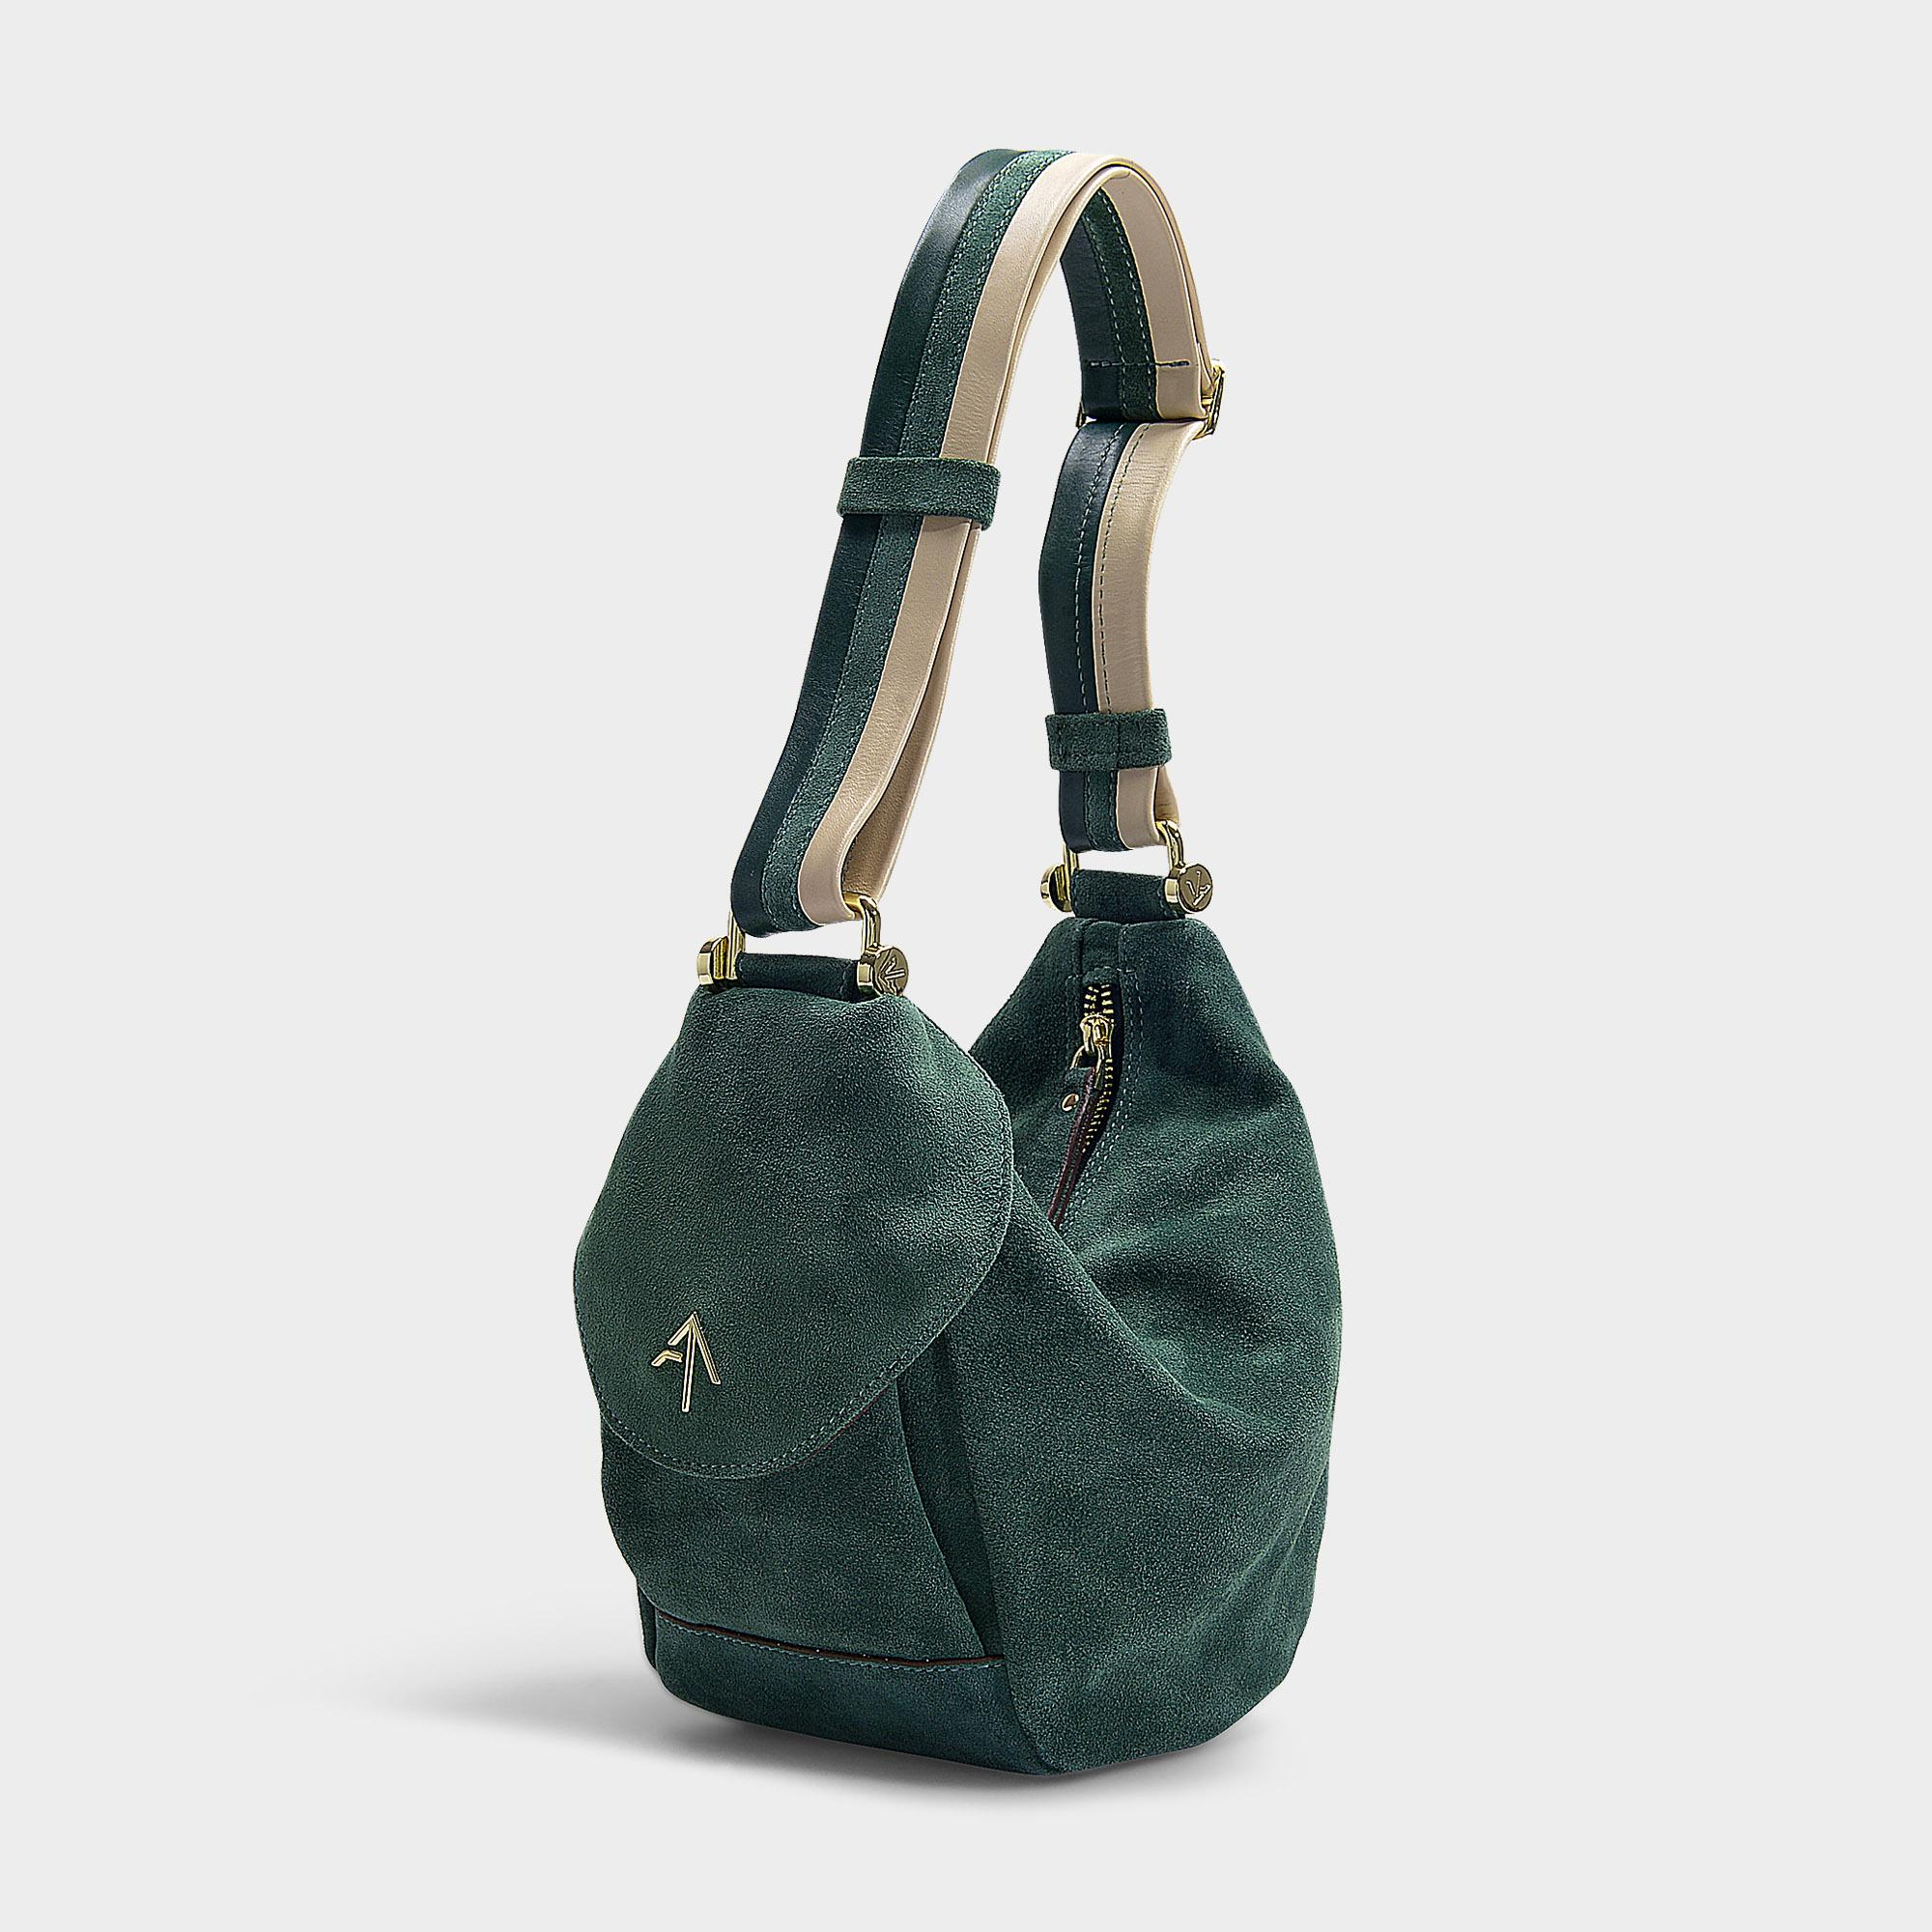 95e48a141e37 manu-atelier-Multicoloured-Hobo-Fernweh-Bag-In-Monte-Green-And-Light -Beige-Vegetable-Tanned-Calf-Leather-And-Suede.jpeg